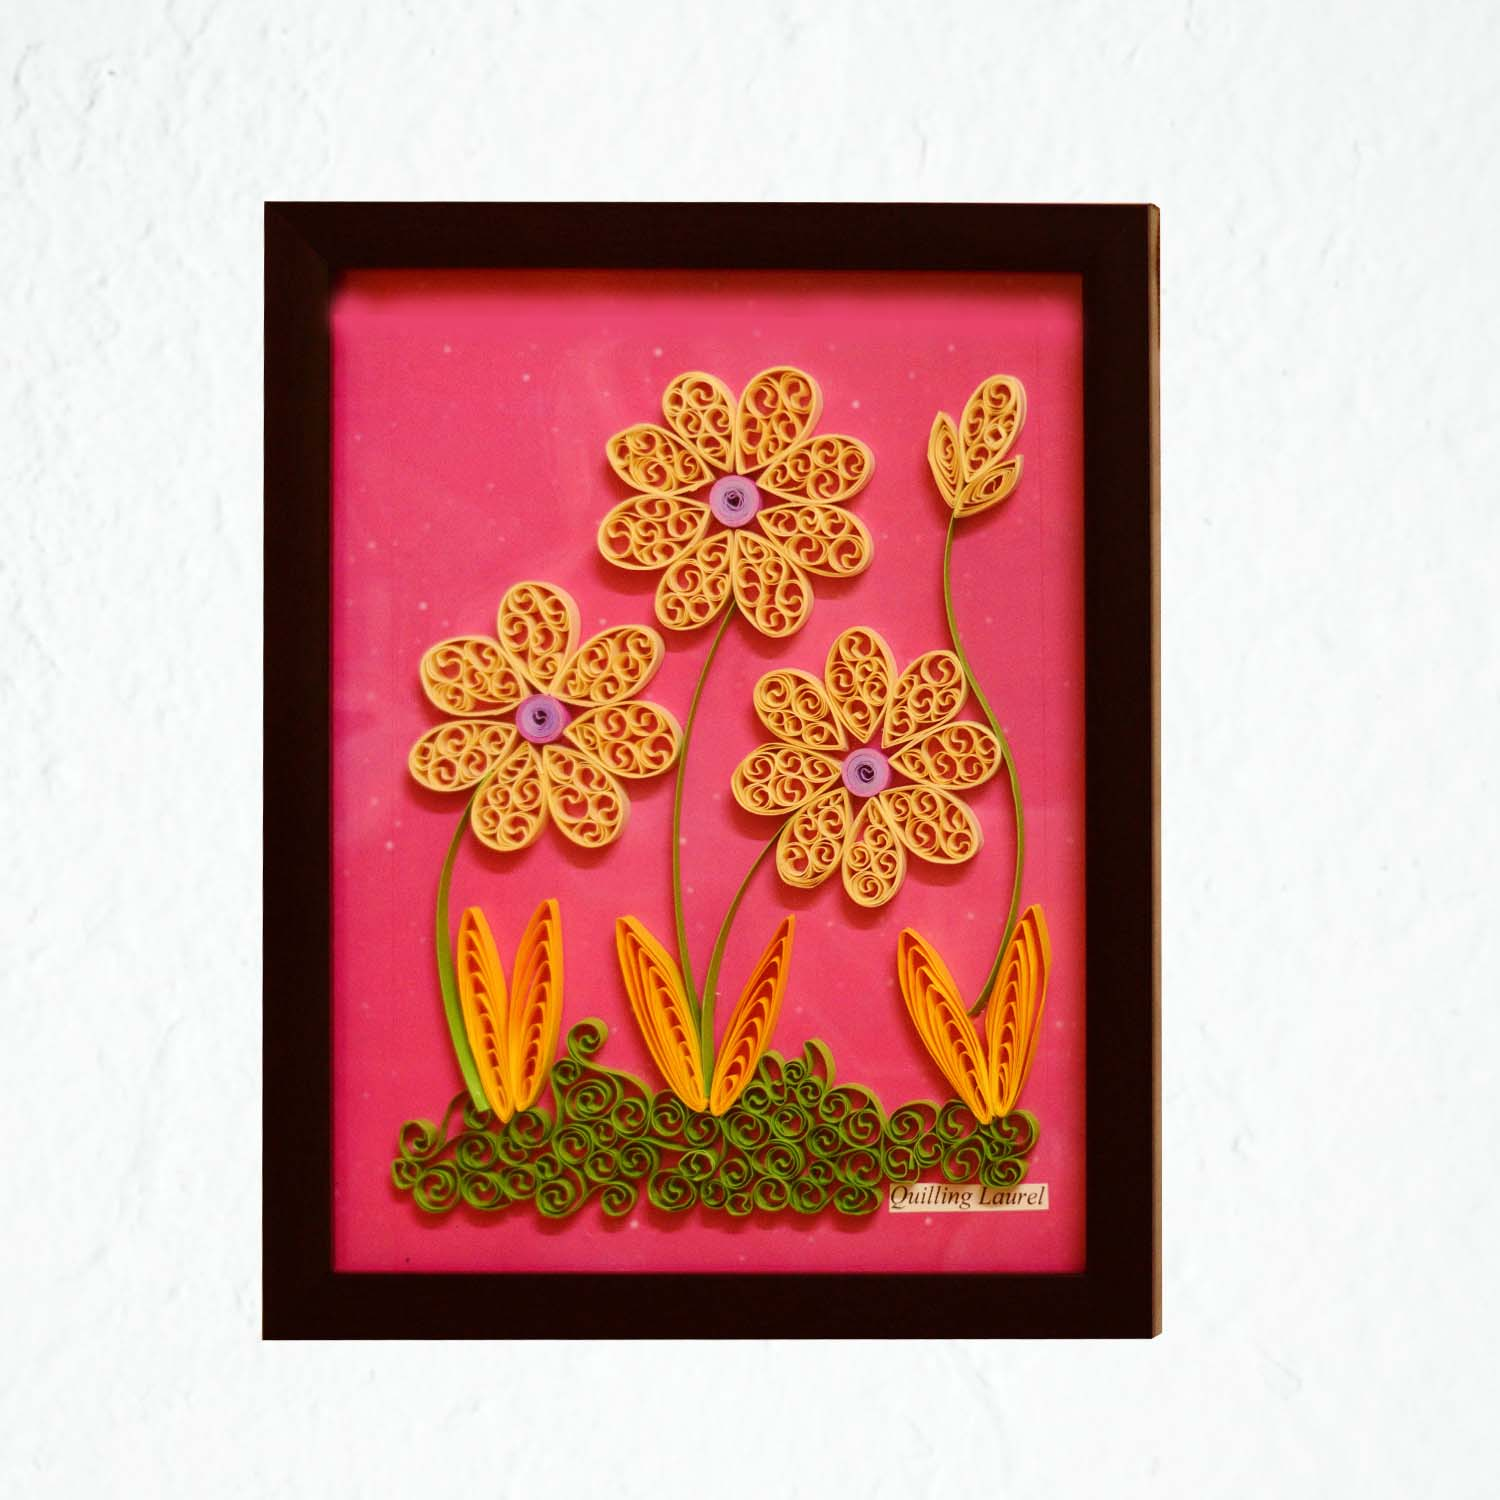 Handmade Paper Quilled Wall Decor